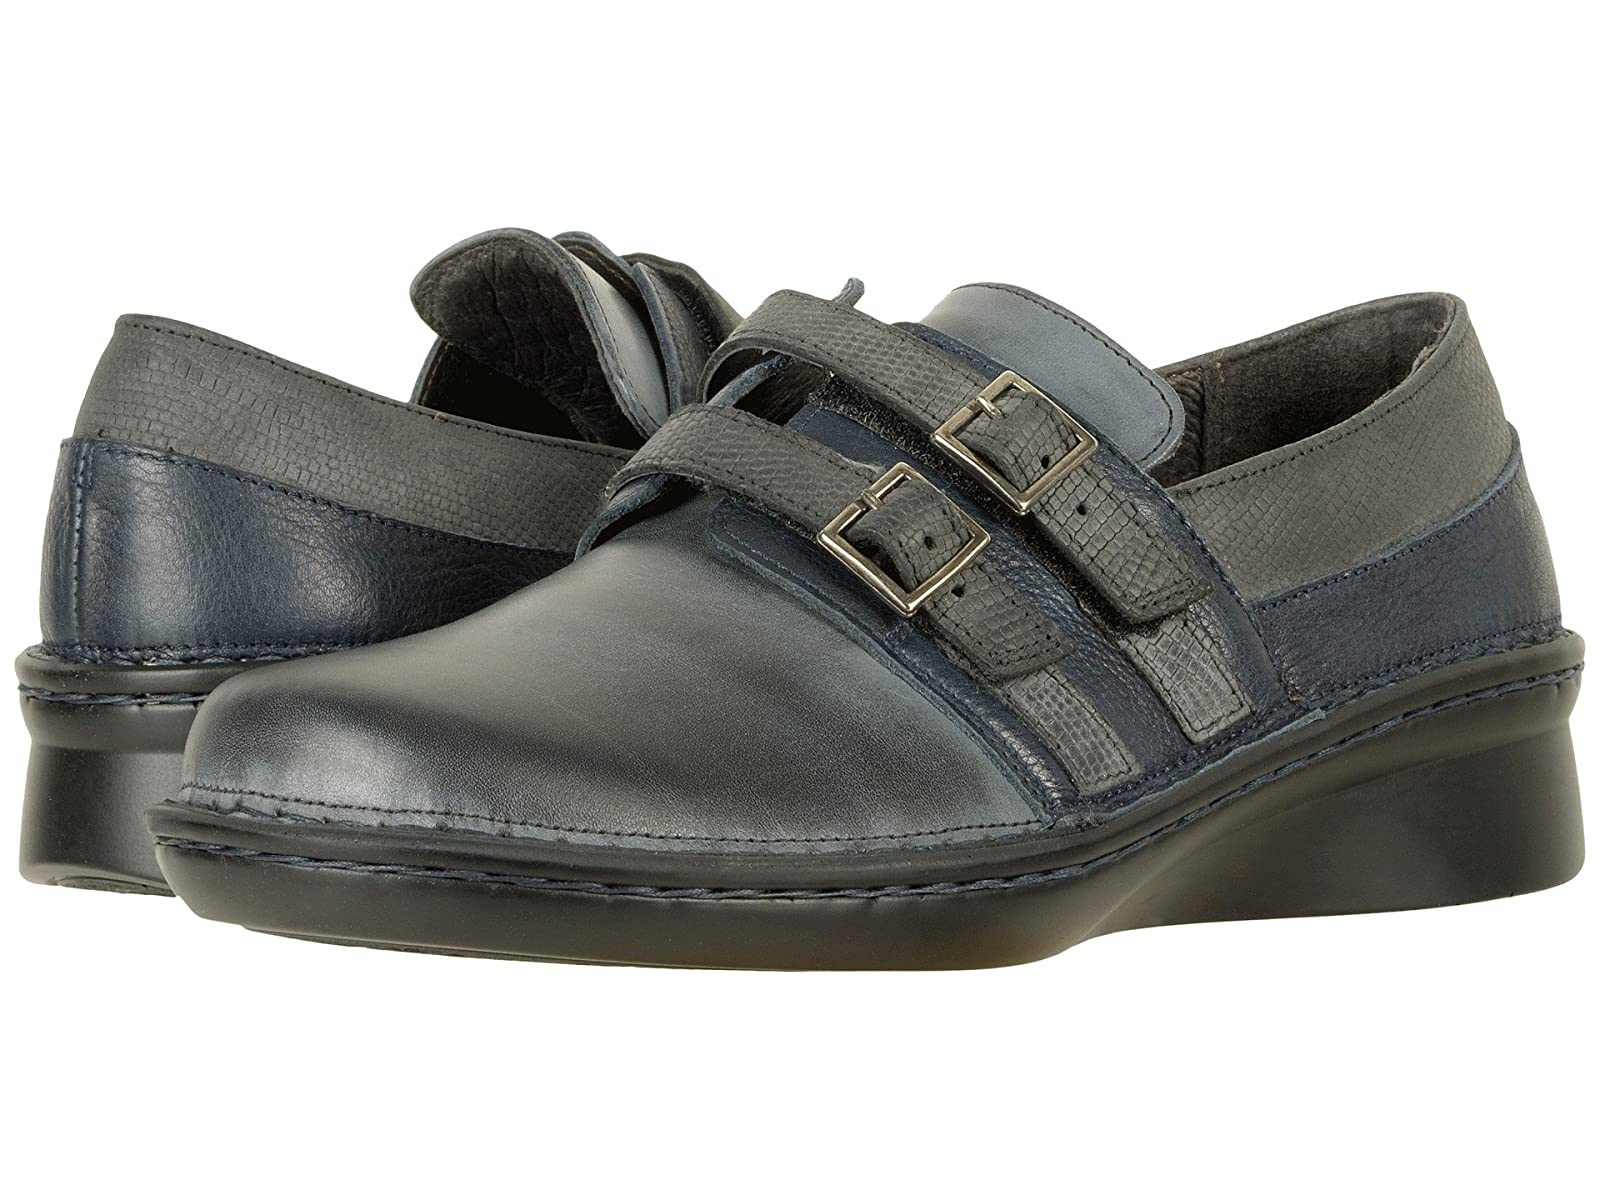 Naot CelestaAtmospheric grades have affordable shoes